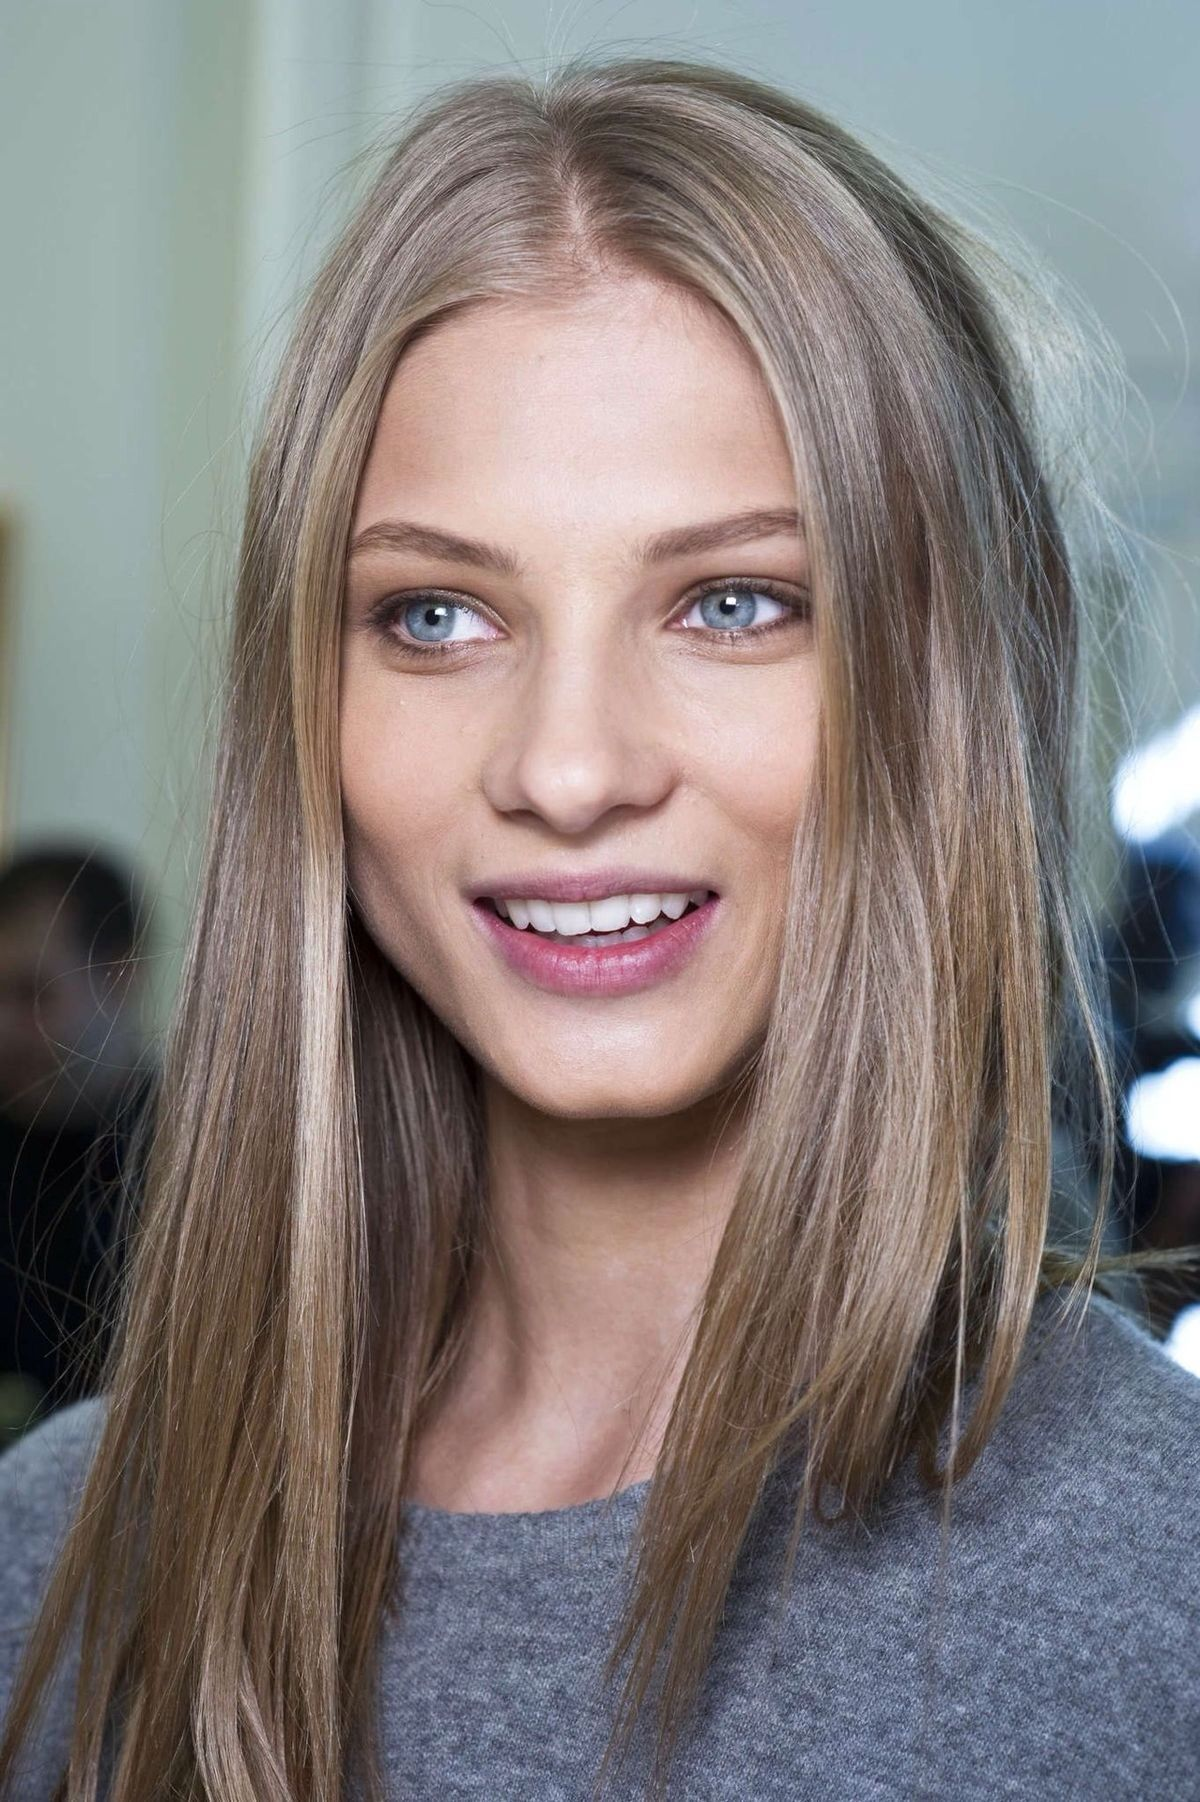 35 Cool Hair Color Ideas To Try In 2018 Hair Coloring Dark Blonde